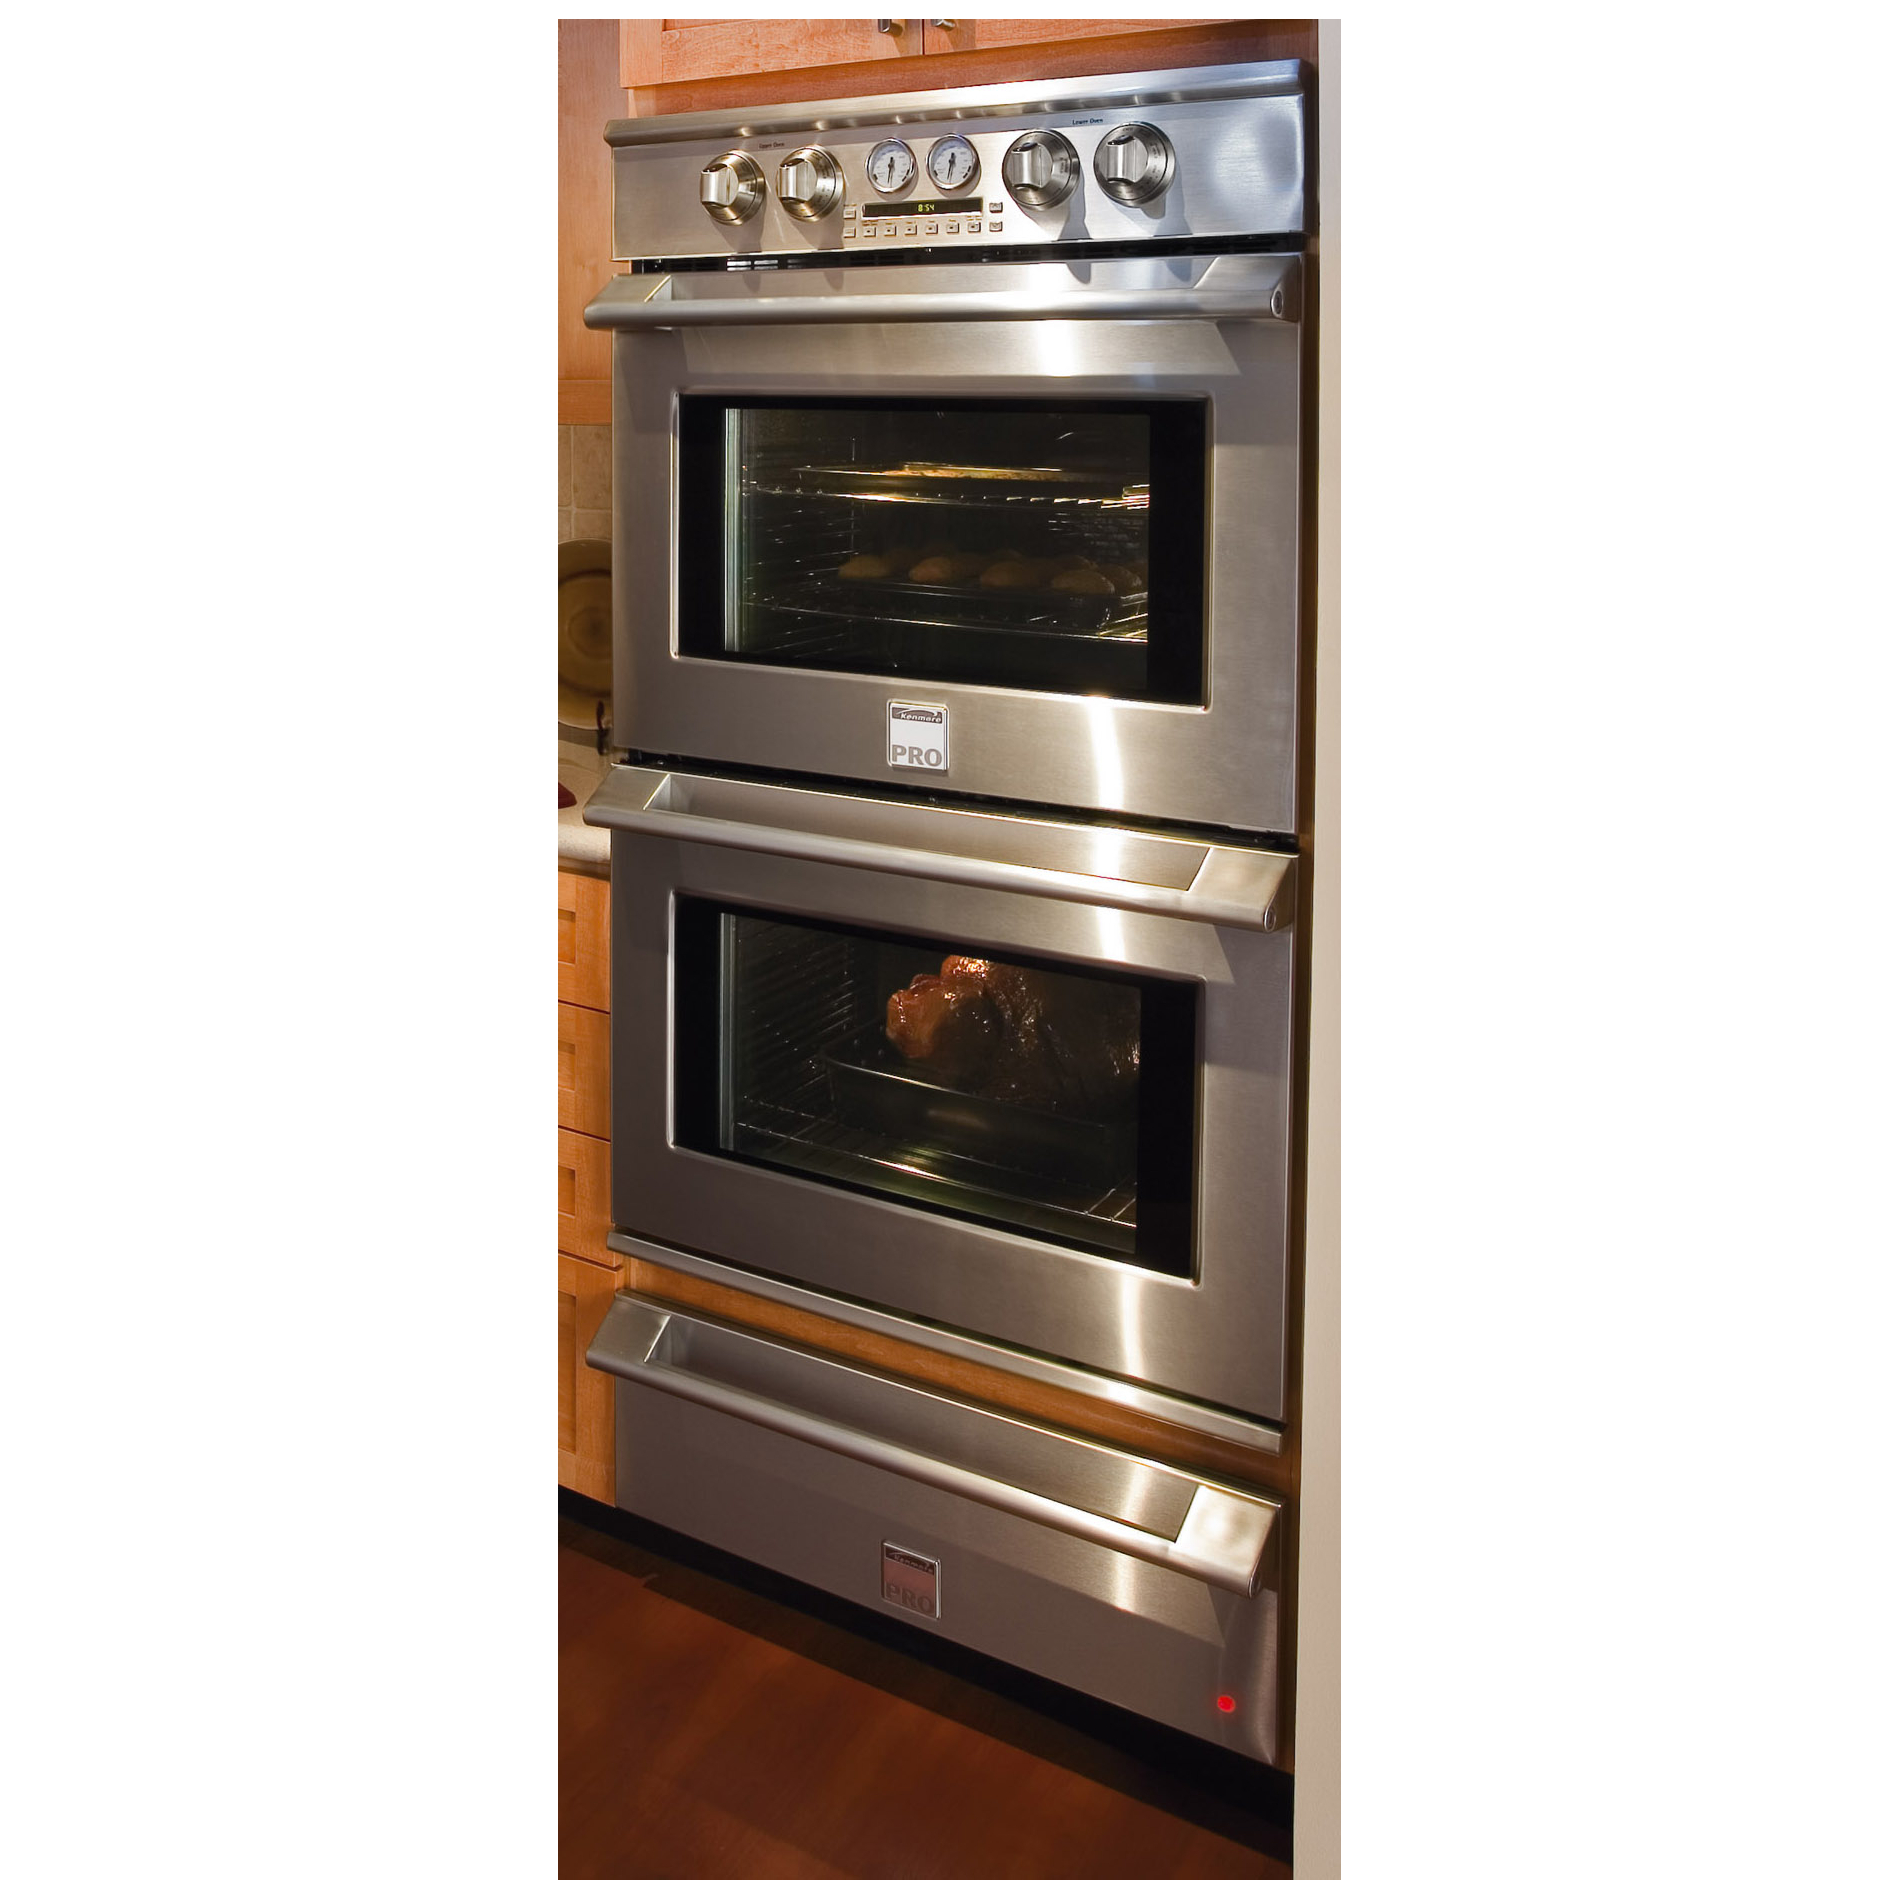 "Kenmore Pro 30"" Electric Double Wall Oven - Stainless Steel"